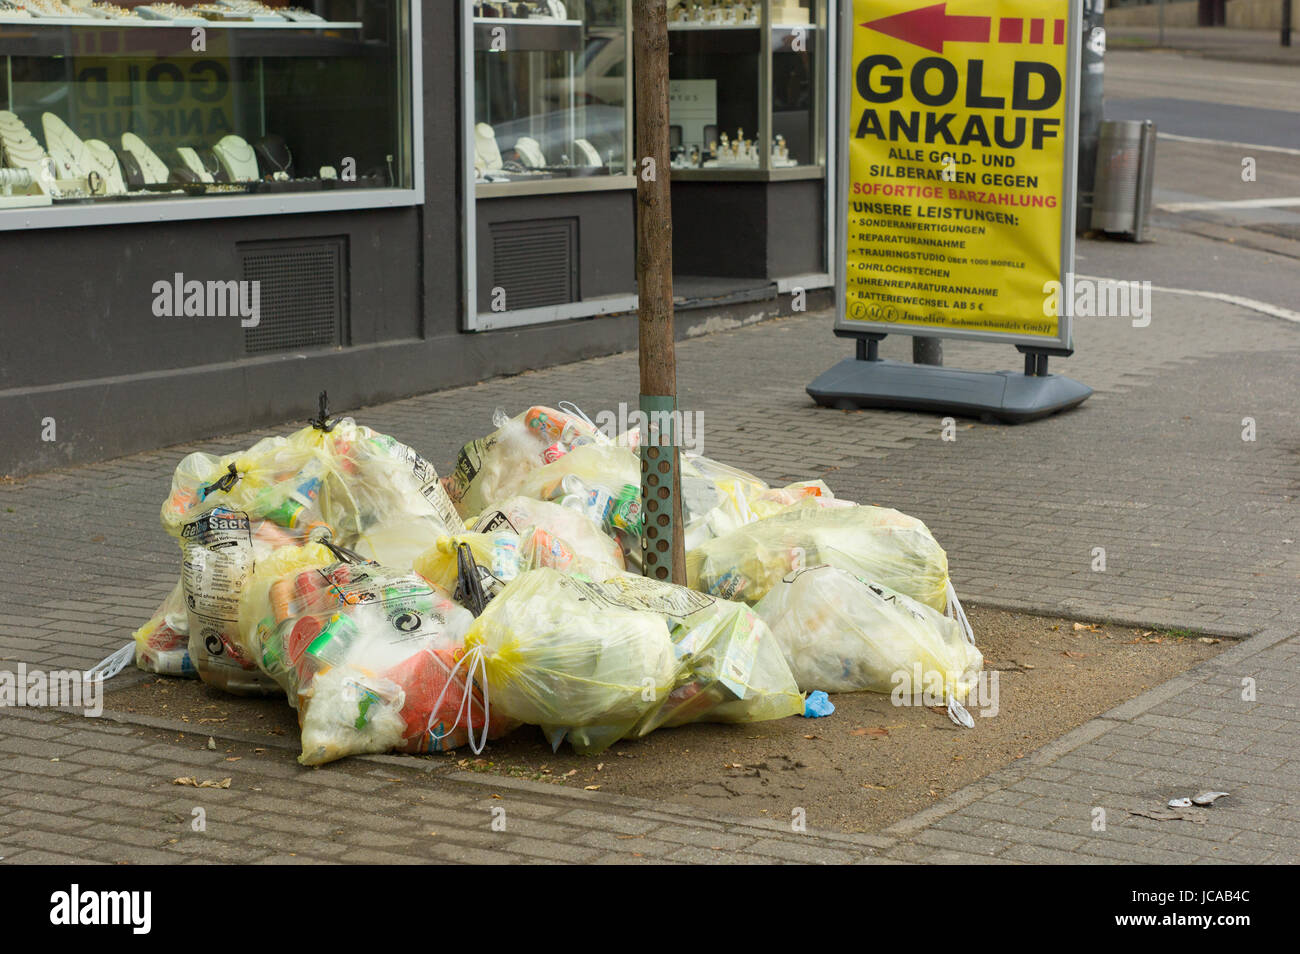 Yellow sacks for recyclable waste awaiting collection on pavement in front of shop, Mainz, Germany - Stock Image